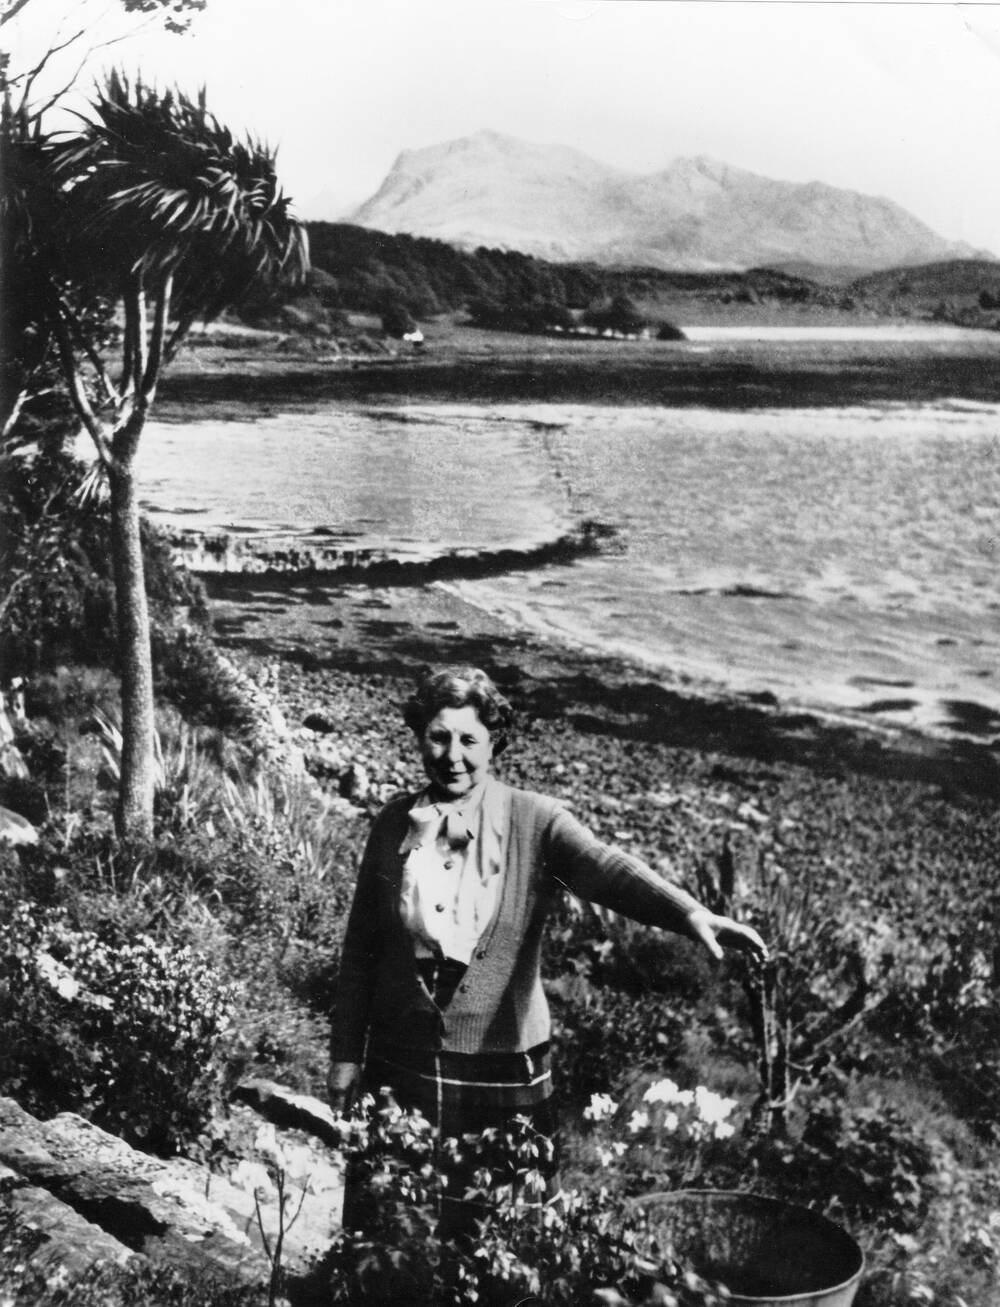 A black and white photograph of Mairi Sawyer pictured in the rock garden she created. The loch and mountains can be seen in the background.